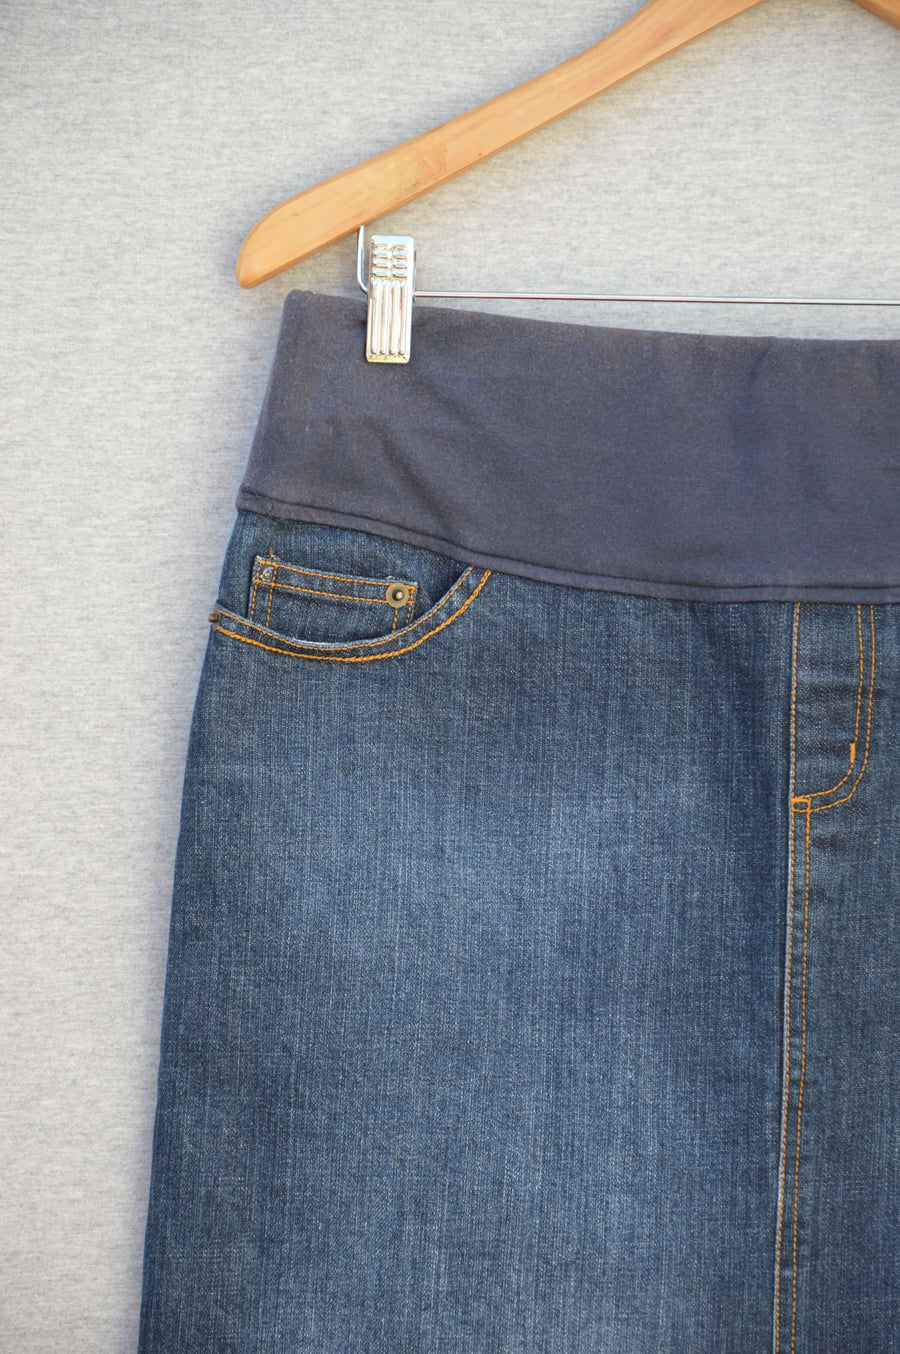 MAYA under bump denim skirt, size 10